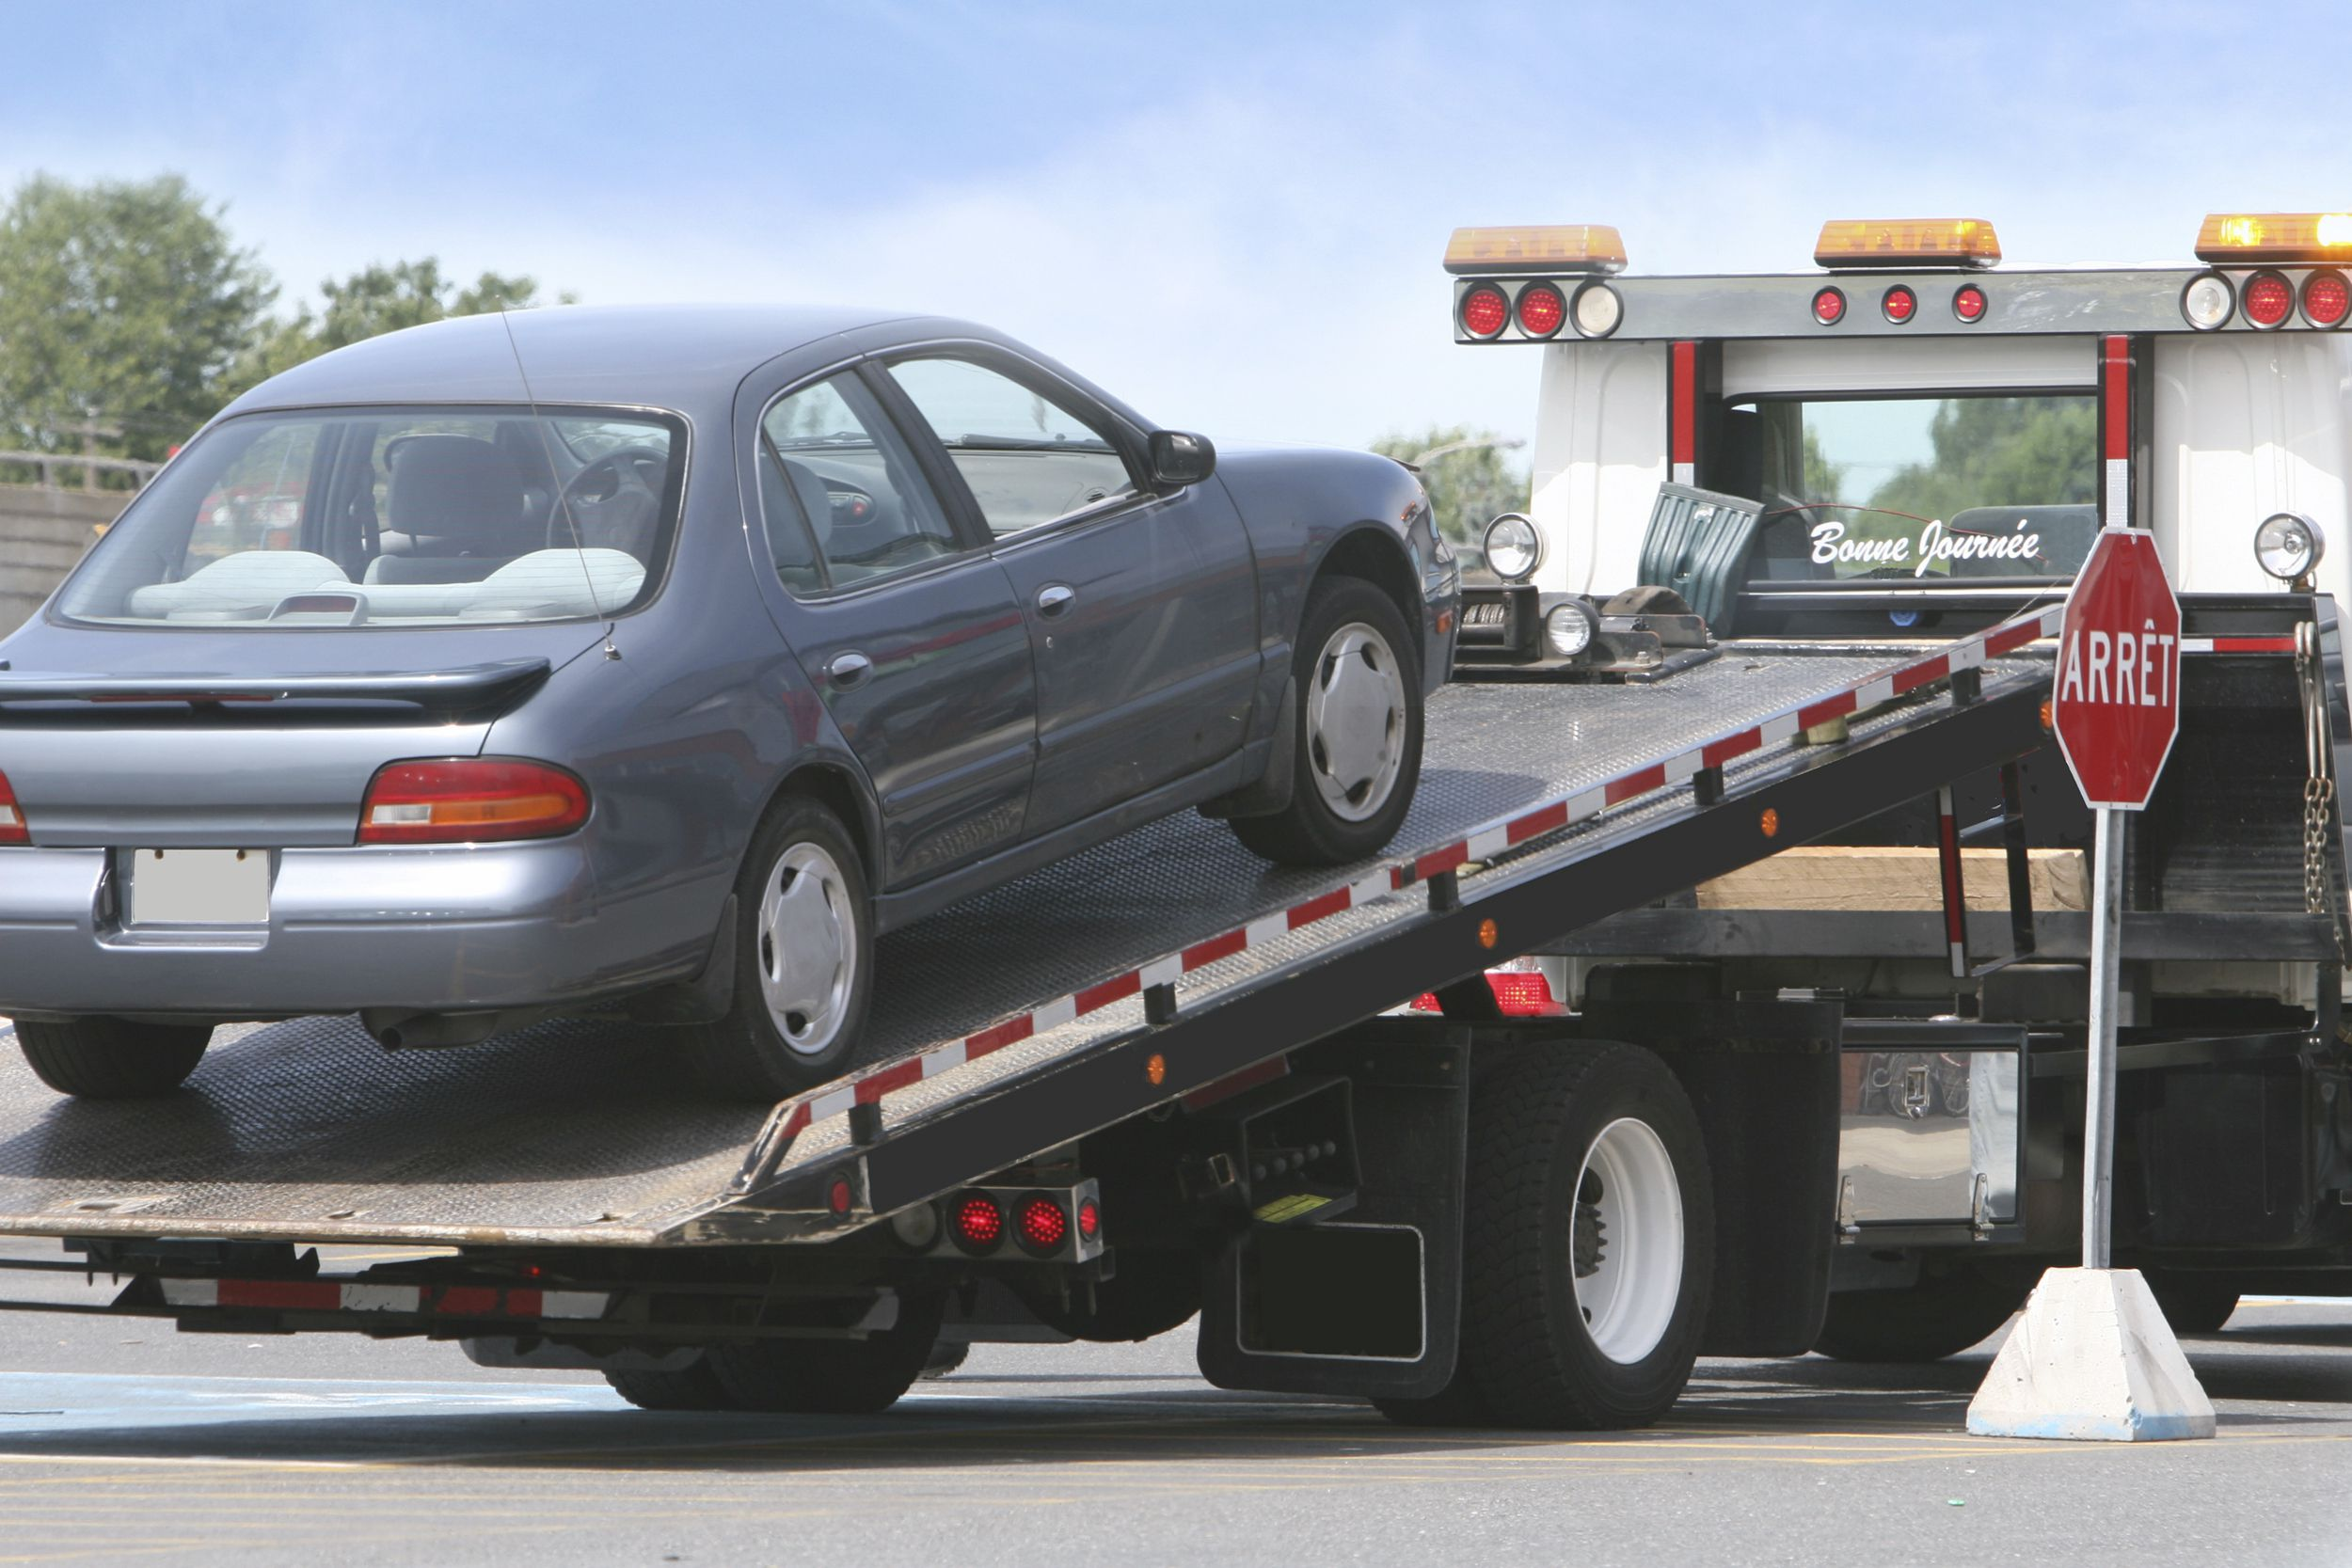 Repossessed Cars for Sale Near Me Luxury How Repossession Works when the Bank Takes Your Car